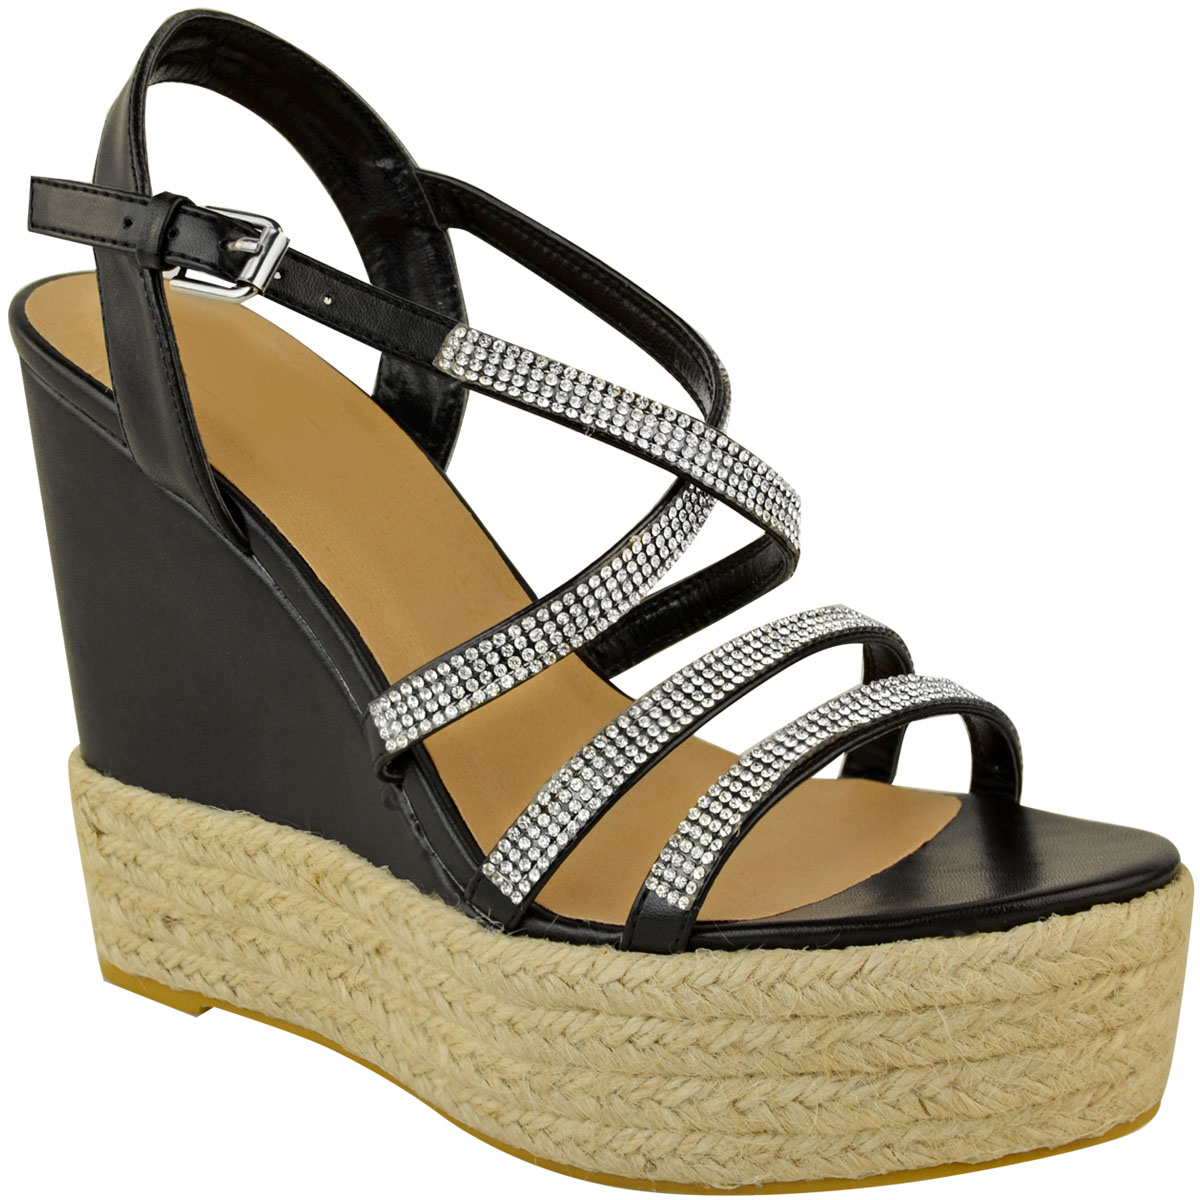 Womens-Ladies-Strappy-Diamante-Wedge-High-Heels-Sandals-Platforms-Shoes-Size-UK thumbnail 3